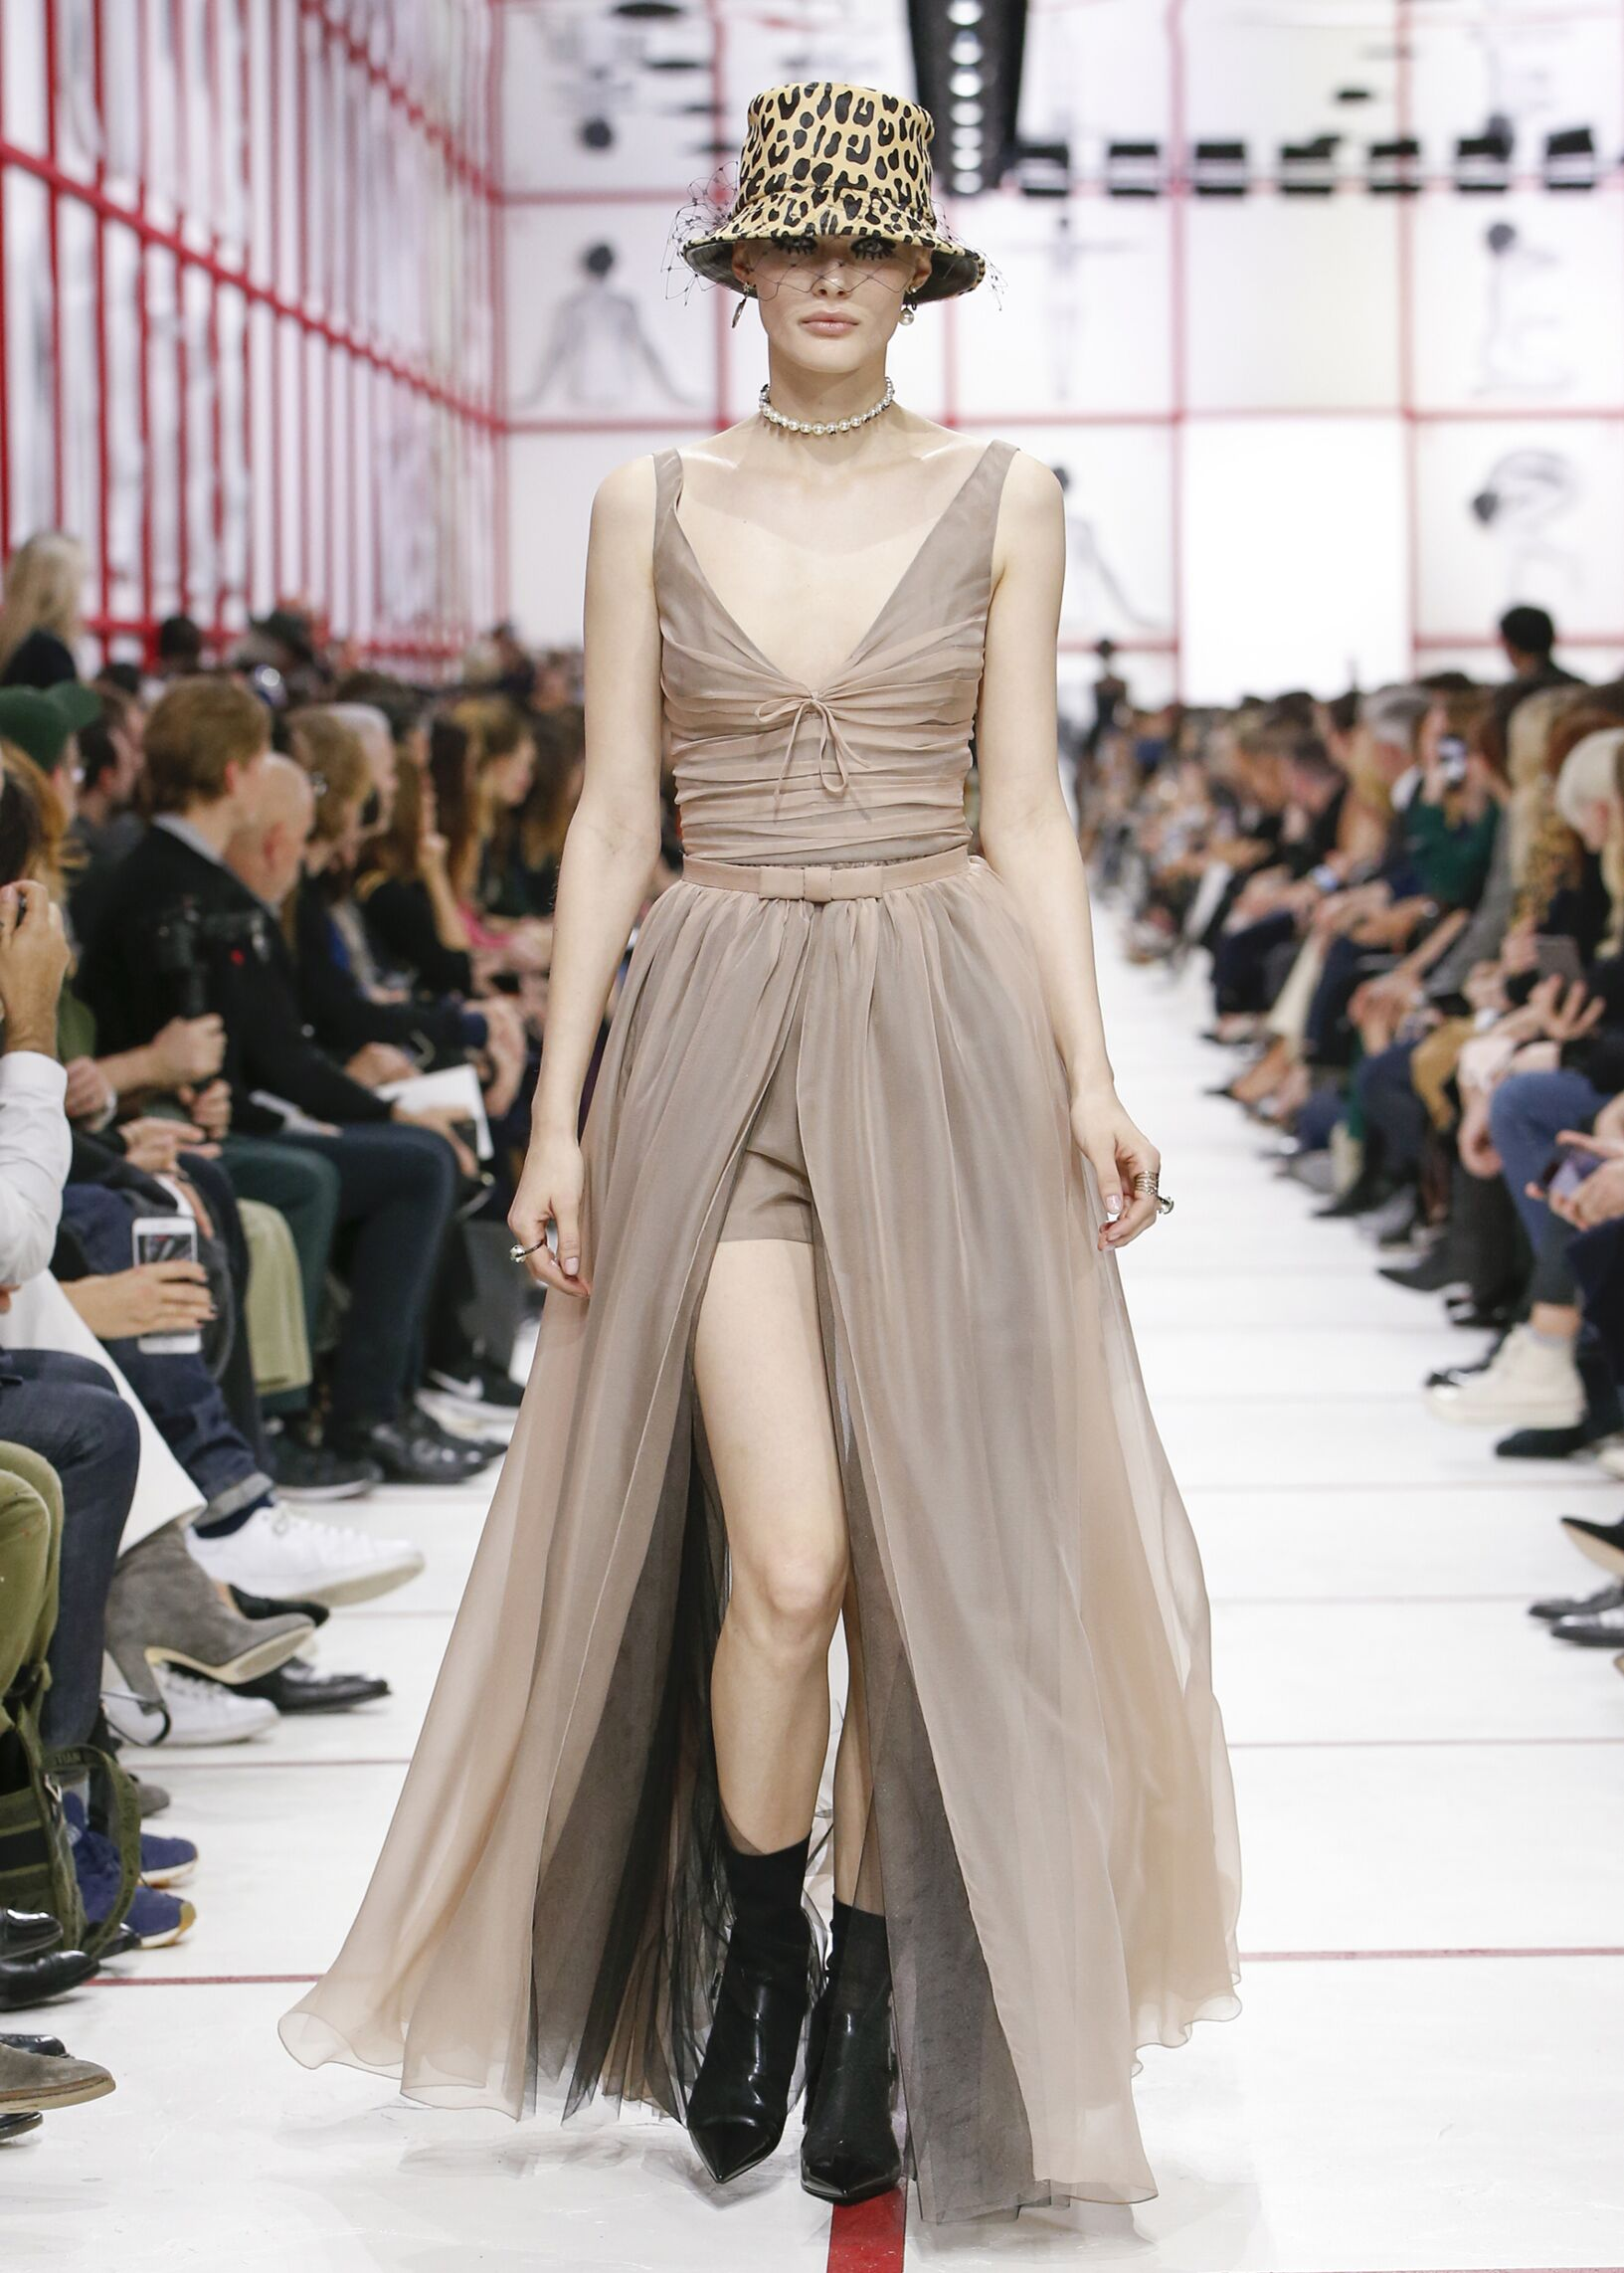 FW 2019-20 Dior Show Paris Fashion Week Womenswear